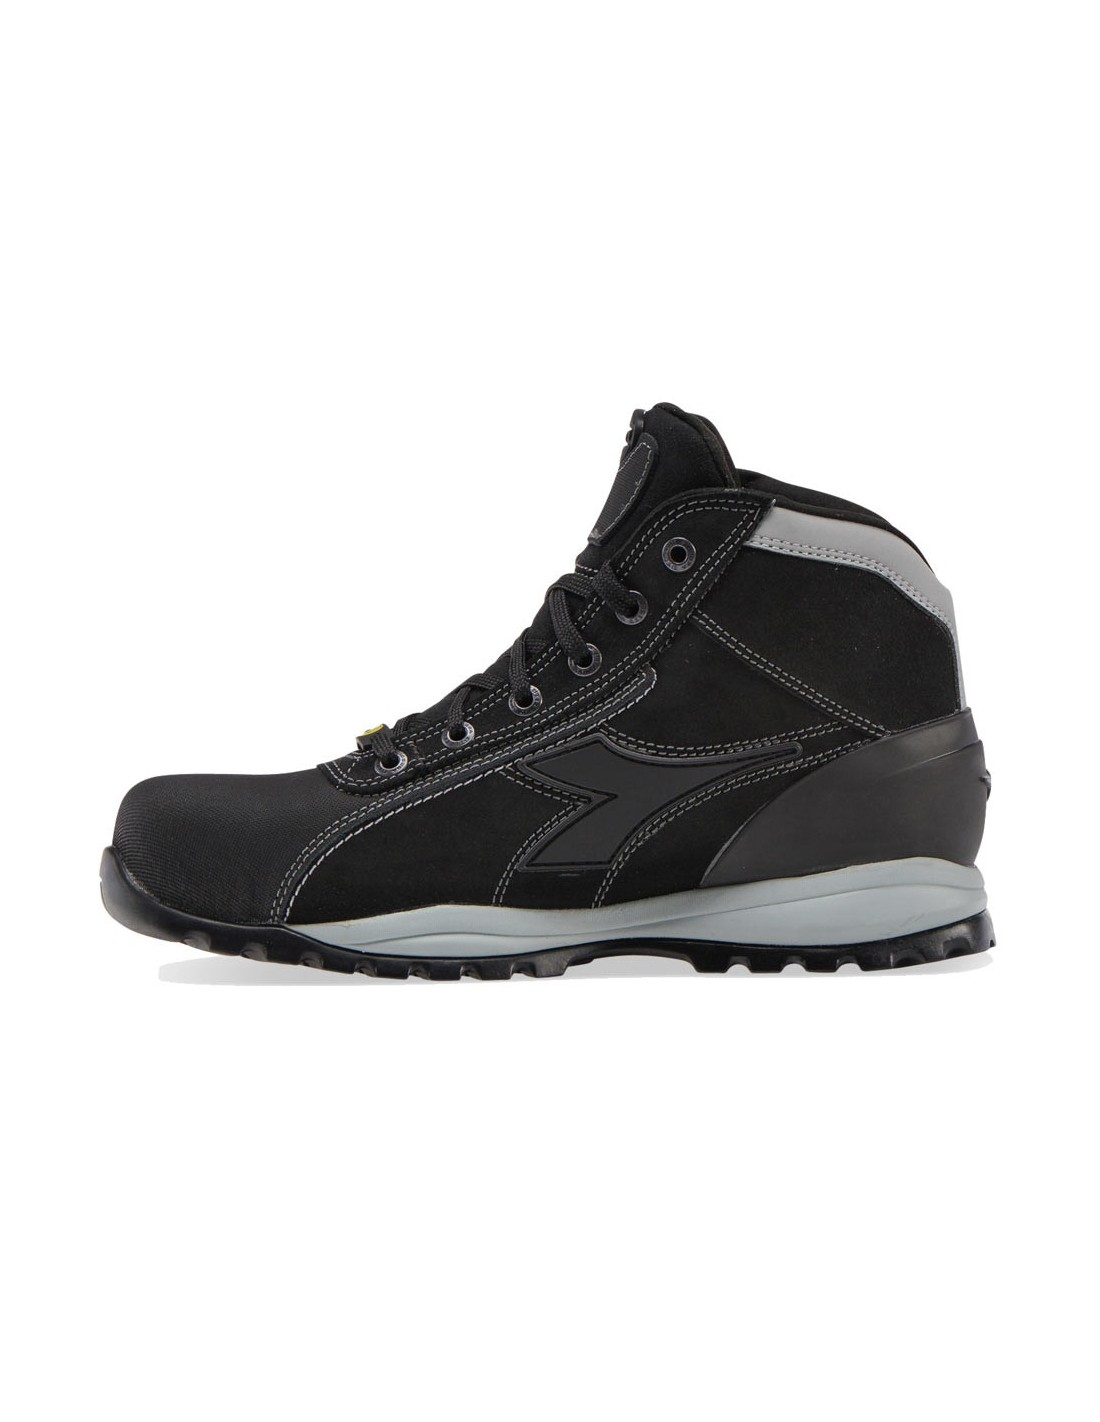 Scarpe antinfortunistiche Geox Diadora GLOVE TECH HIGH PRO